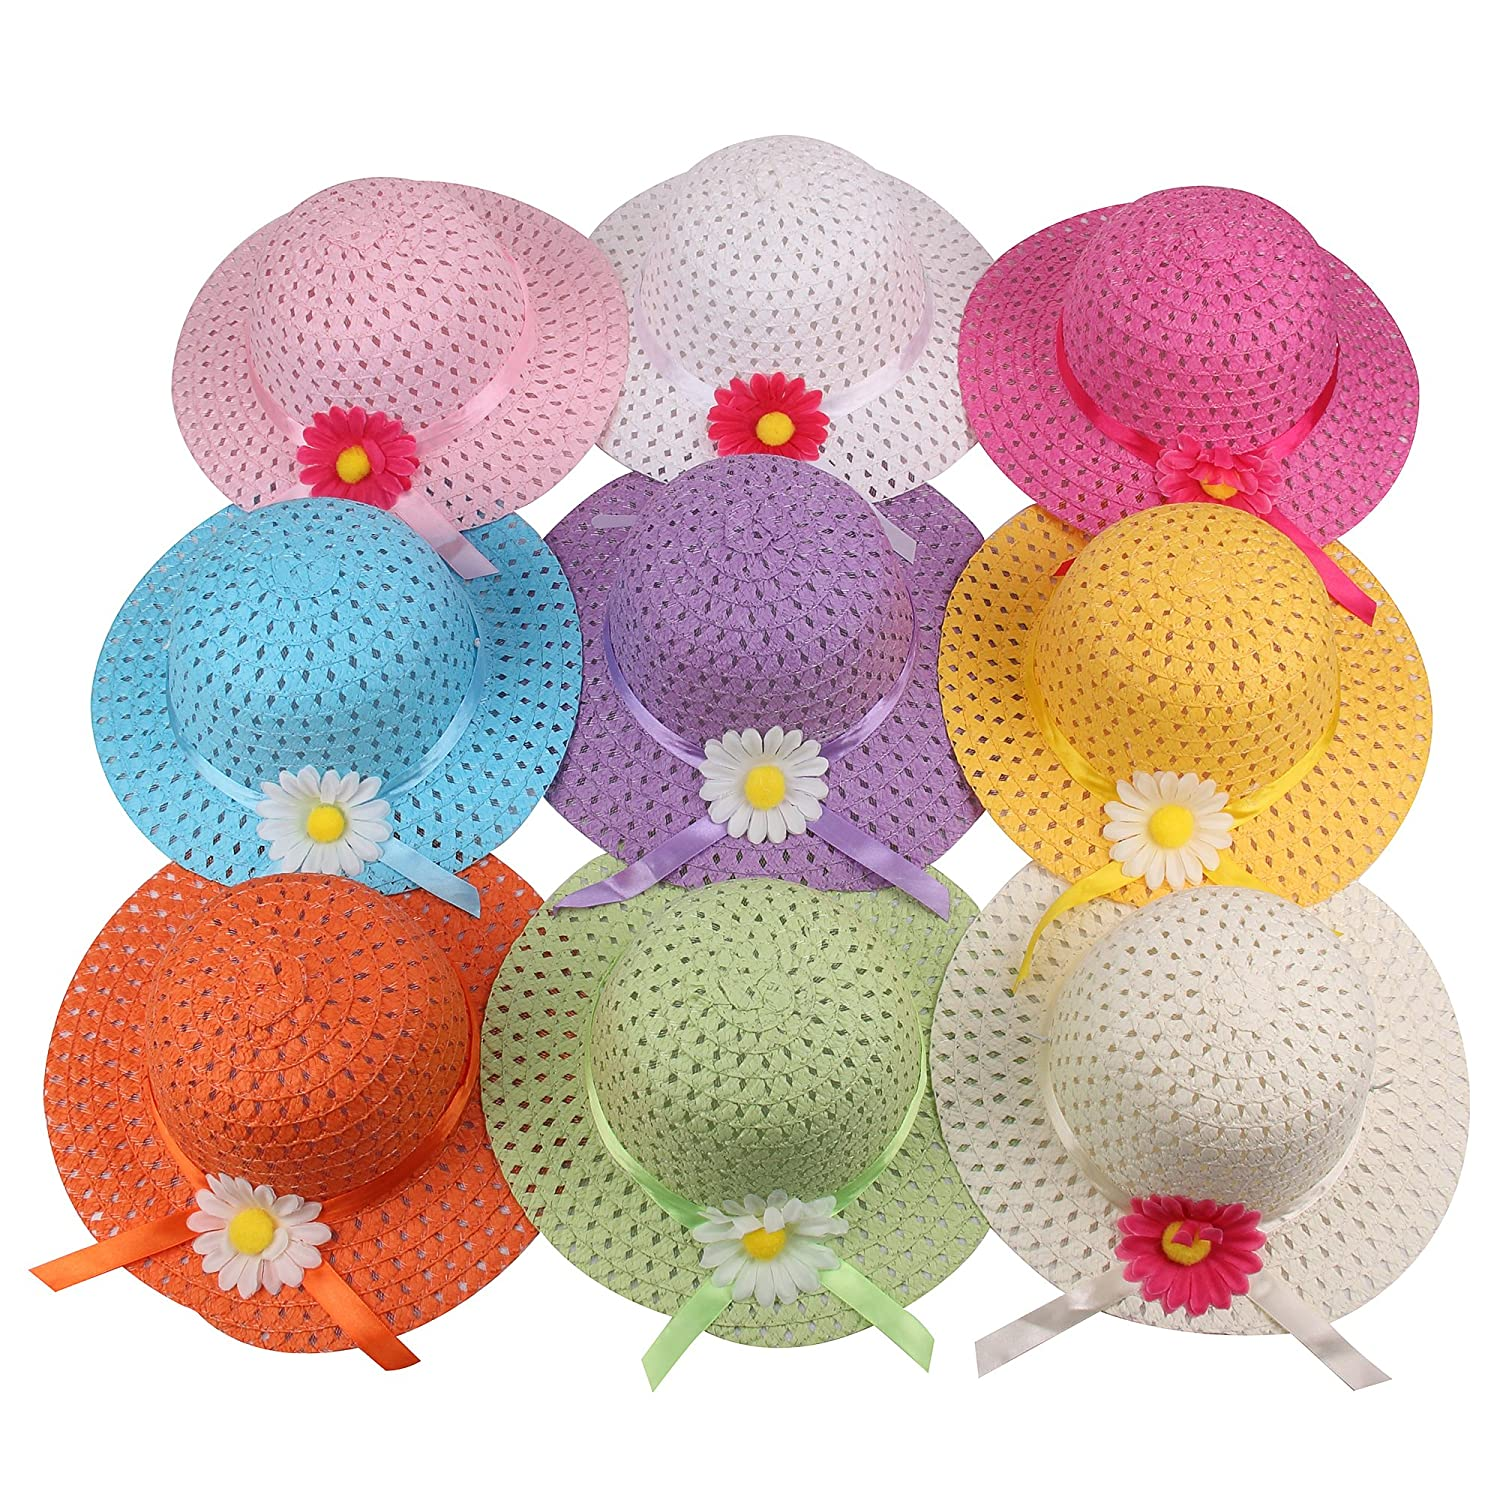 Girls Sunflower Straw Tea Party Hat Set (9 Pcs, Assorted Colors) Milky Sky